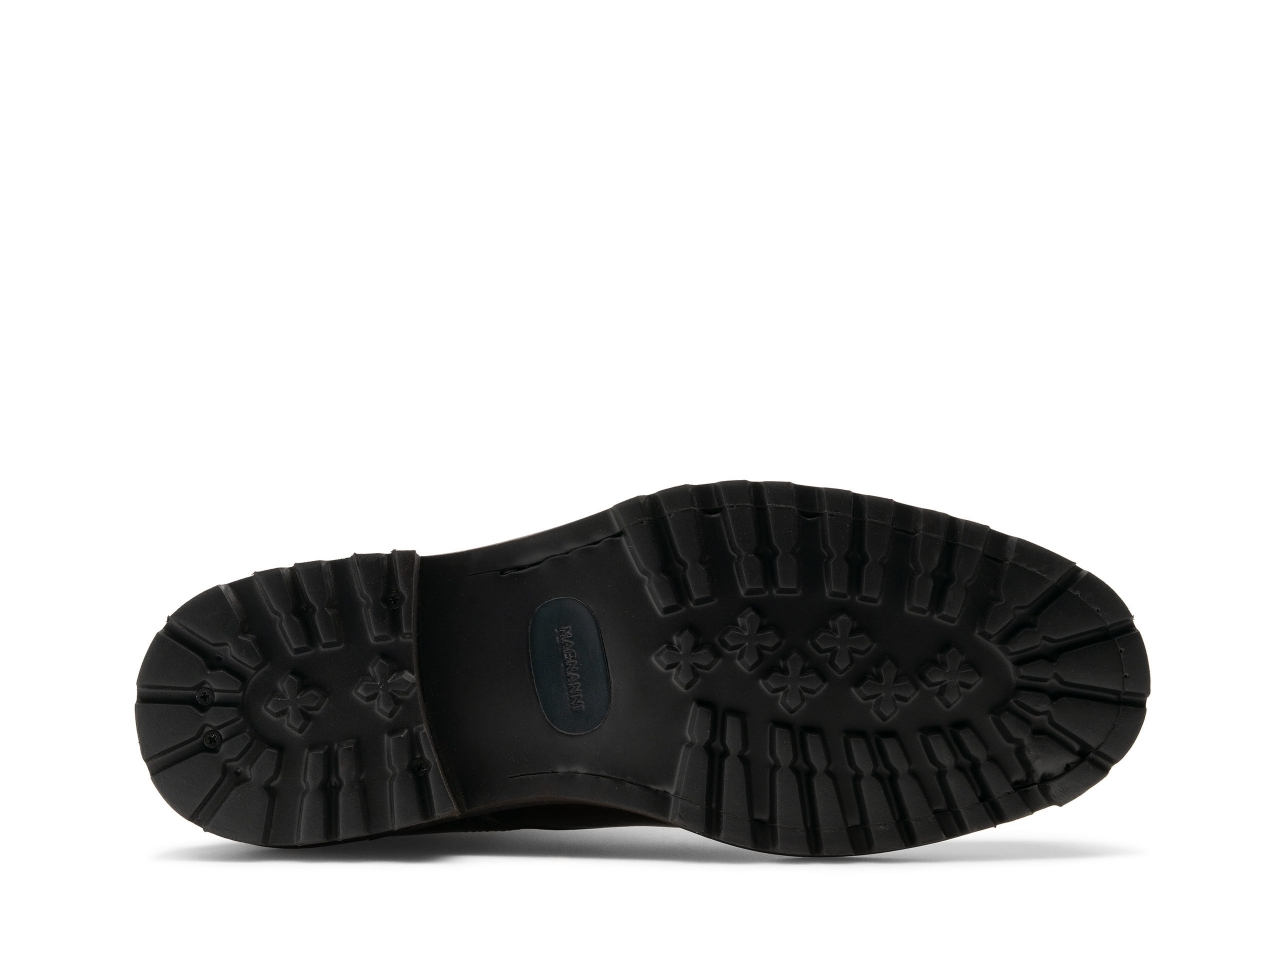 Sole of the Armade II Brown